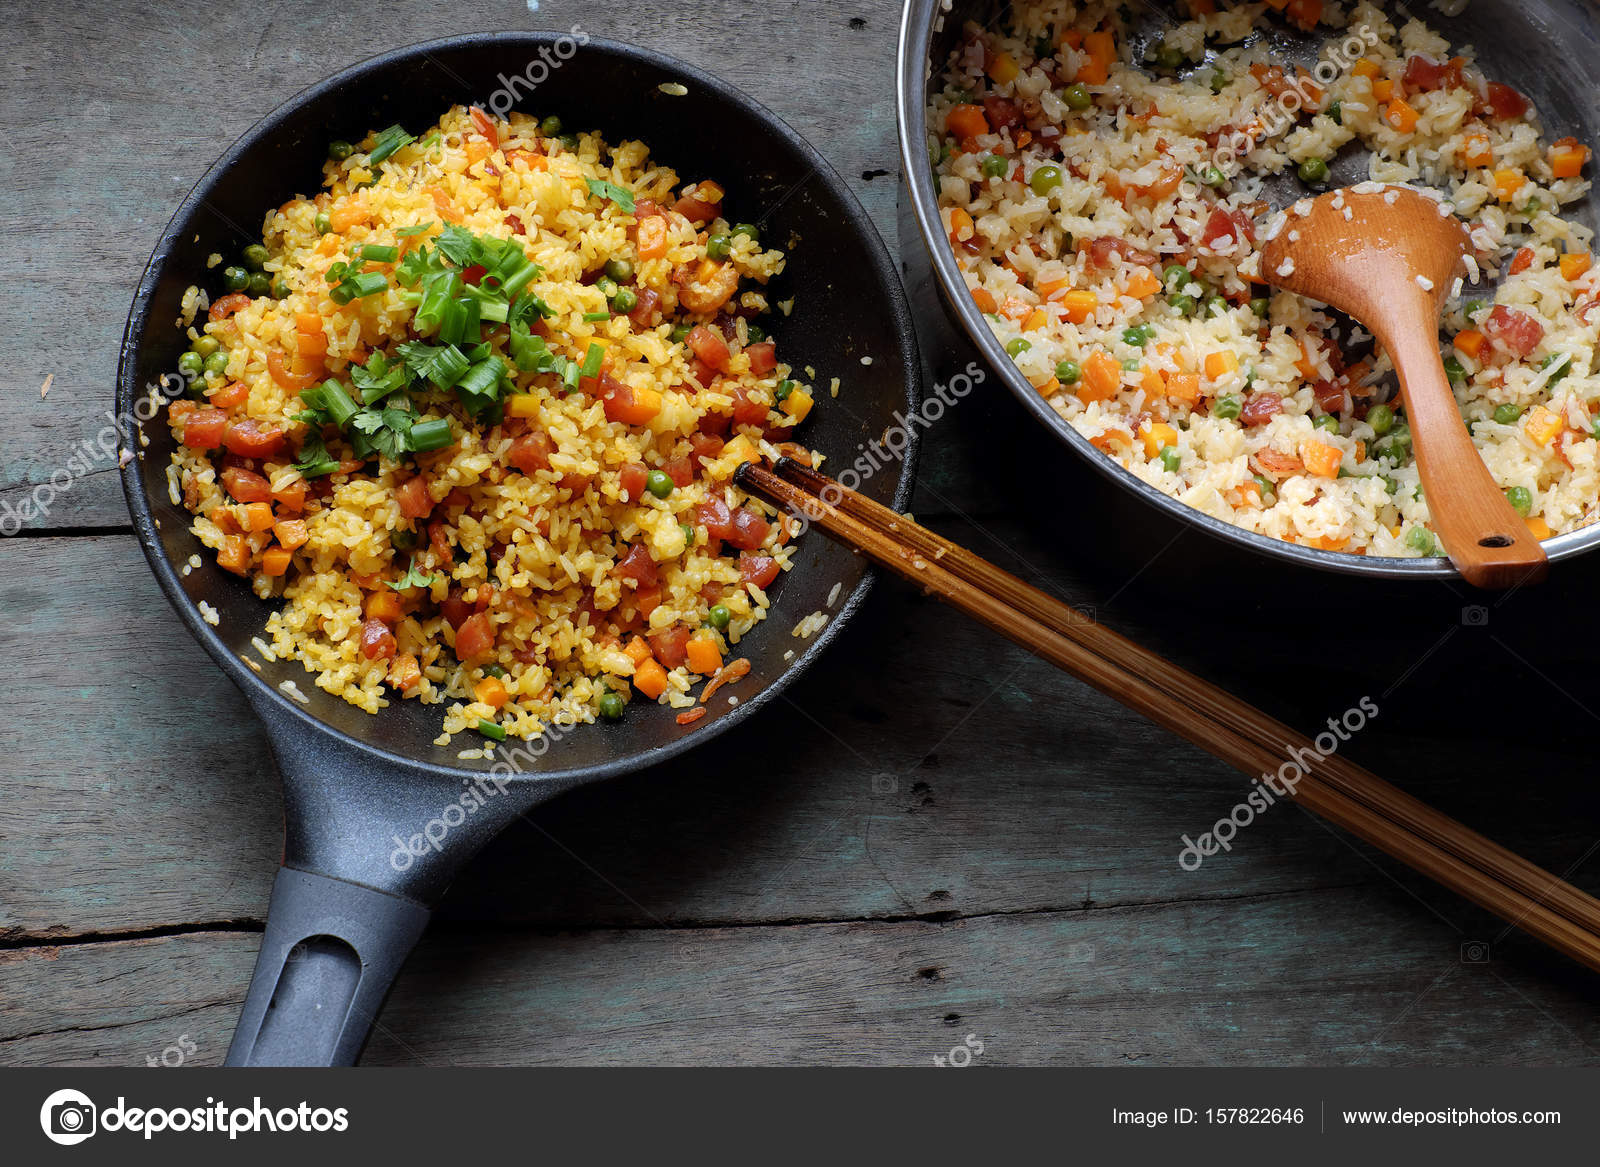 Vietnam food fried rice stock photo xuanhuongho 157822646 vietnam food fried rice make from rice egg sausage dried shrimp bean cucumber tomato carrot and scallion processing with colorful food material on ccuart Images